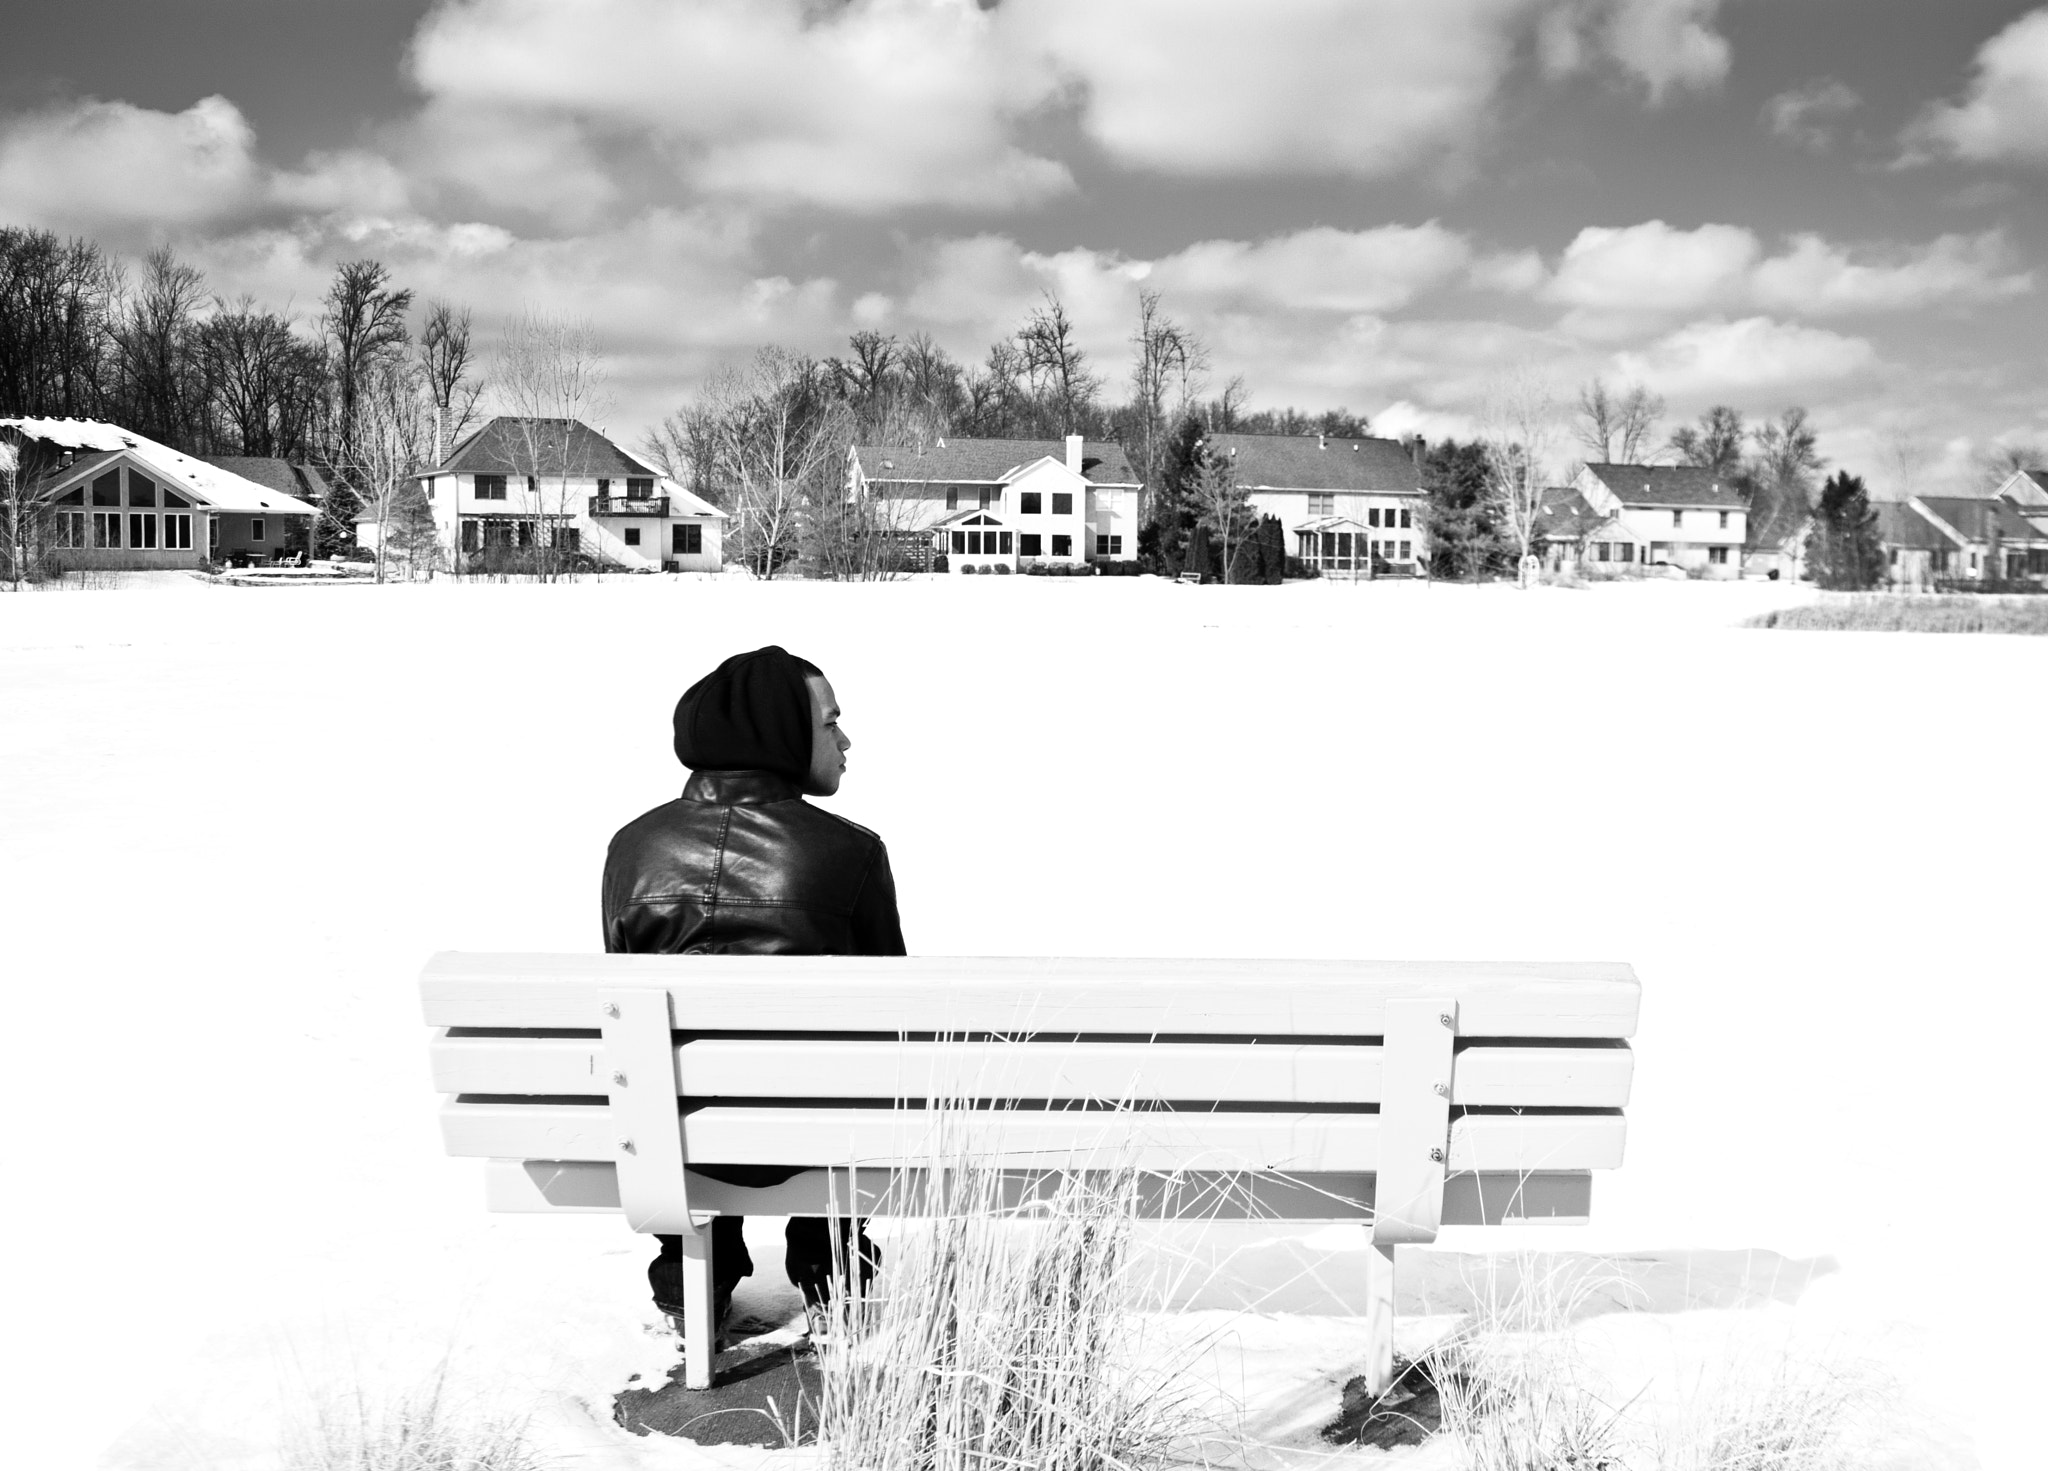 Photograph Loneliness...it's underrated  by Jonathen Adkins on 500px